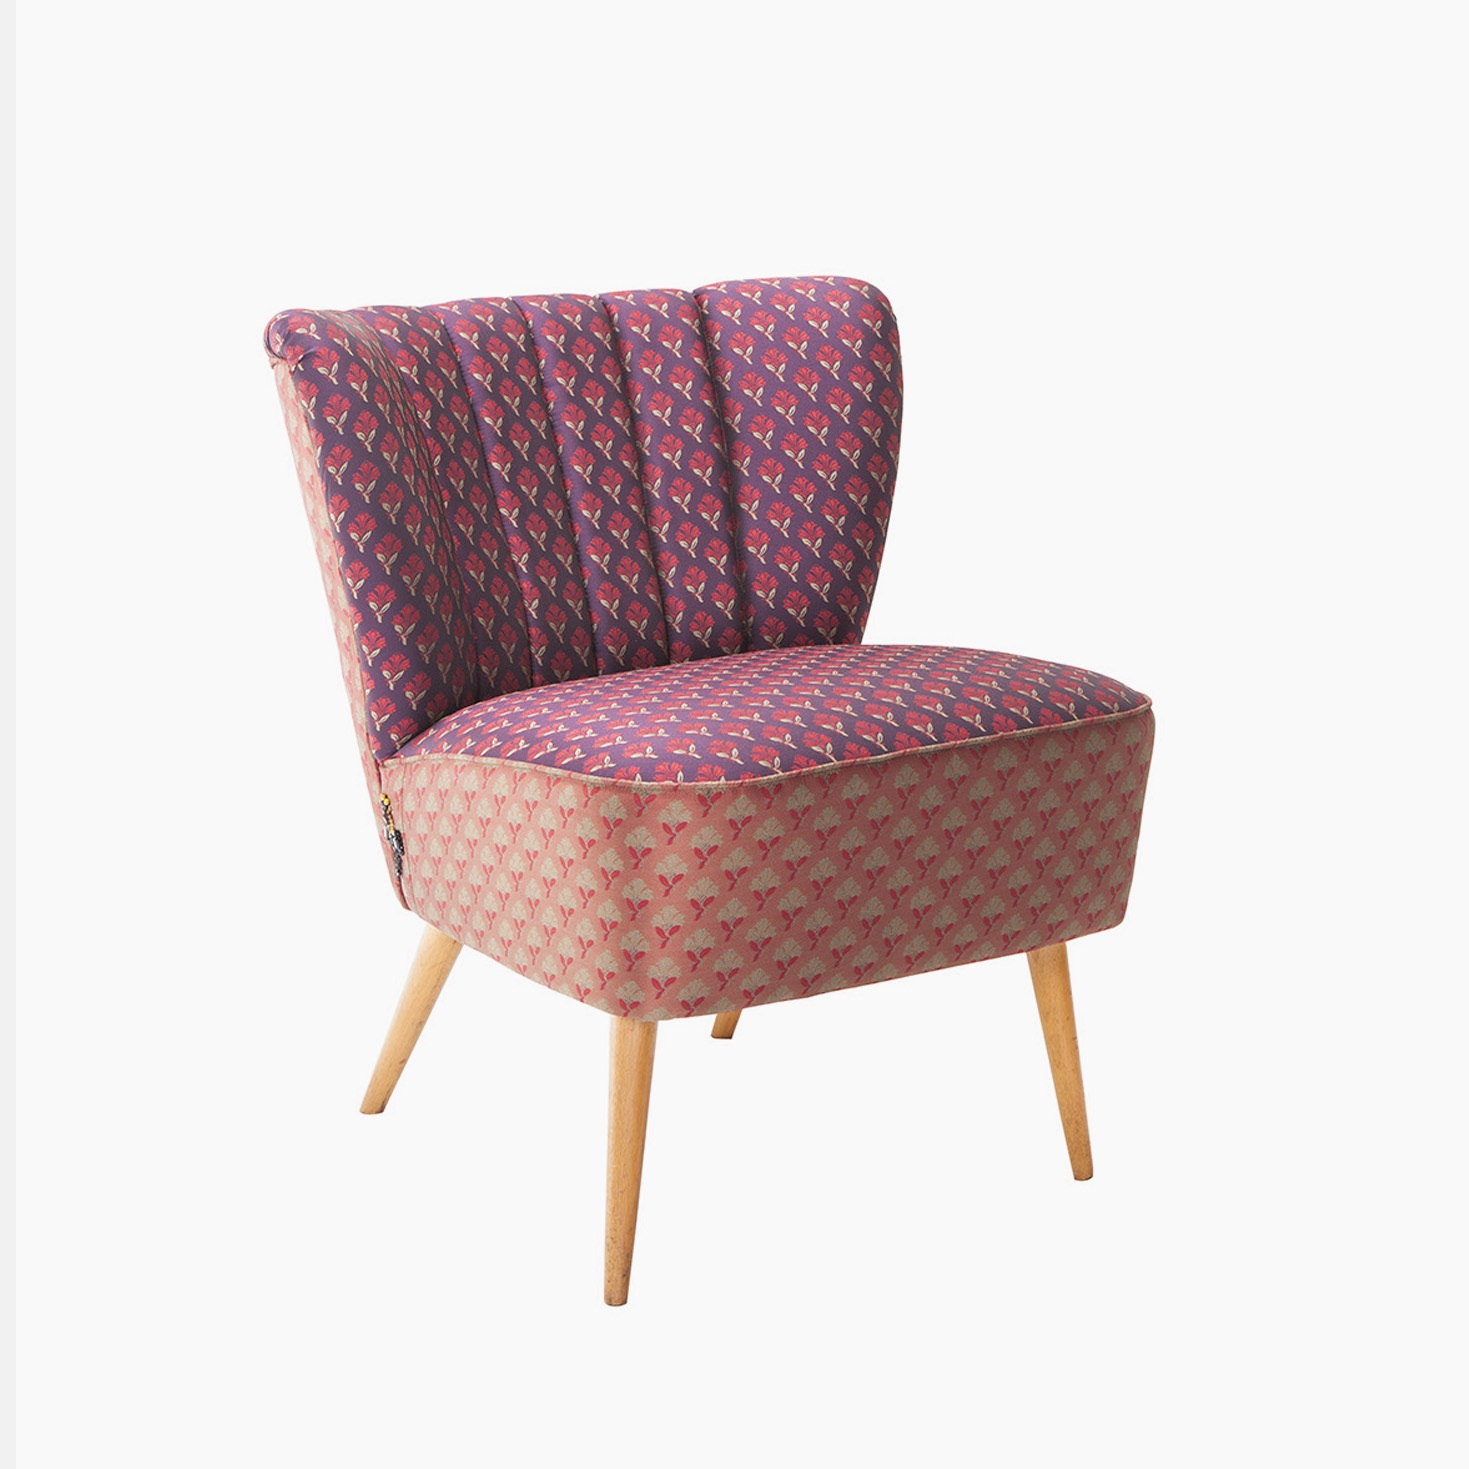 Vintage chair Luvedesign